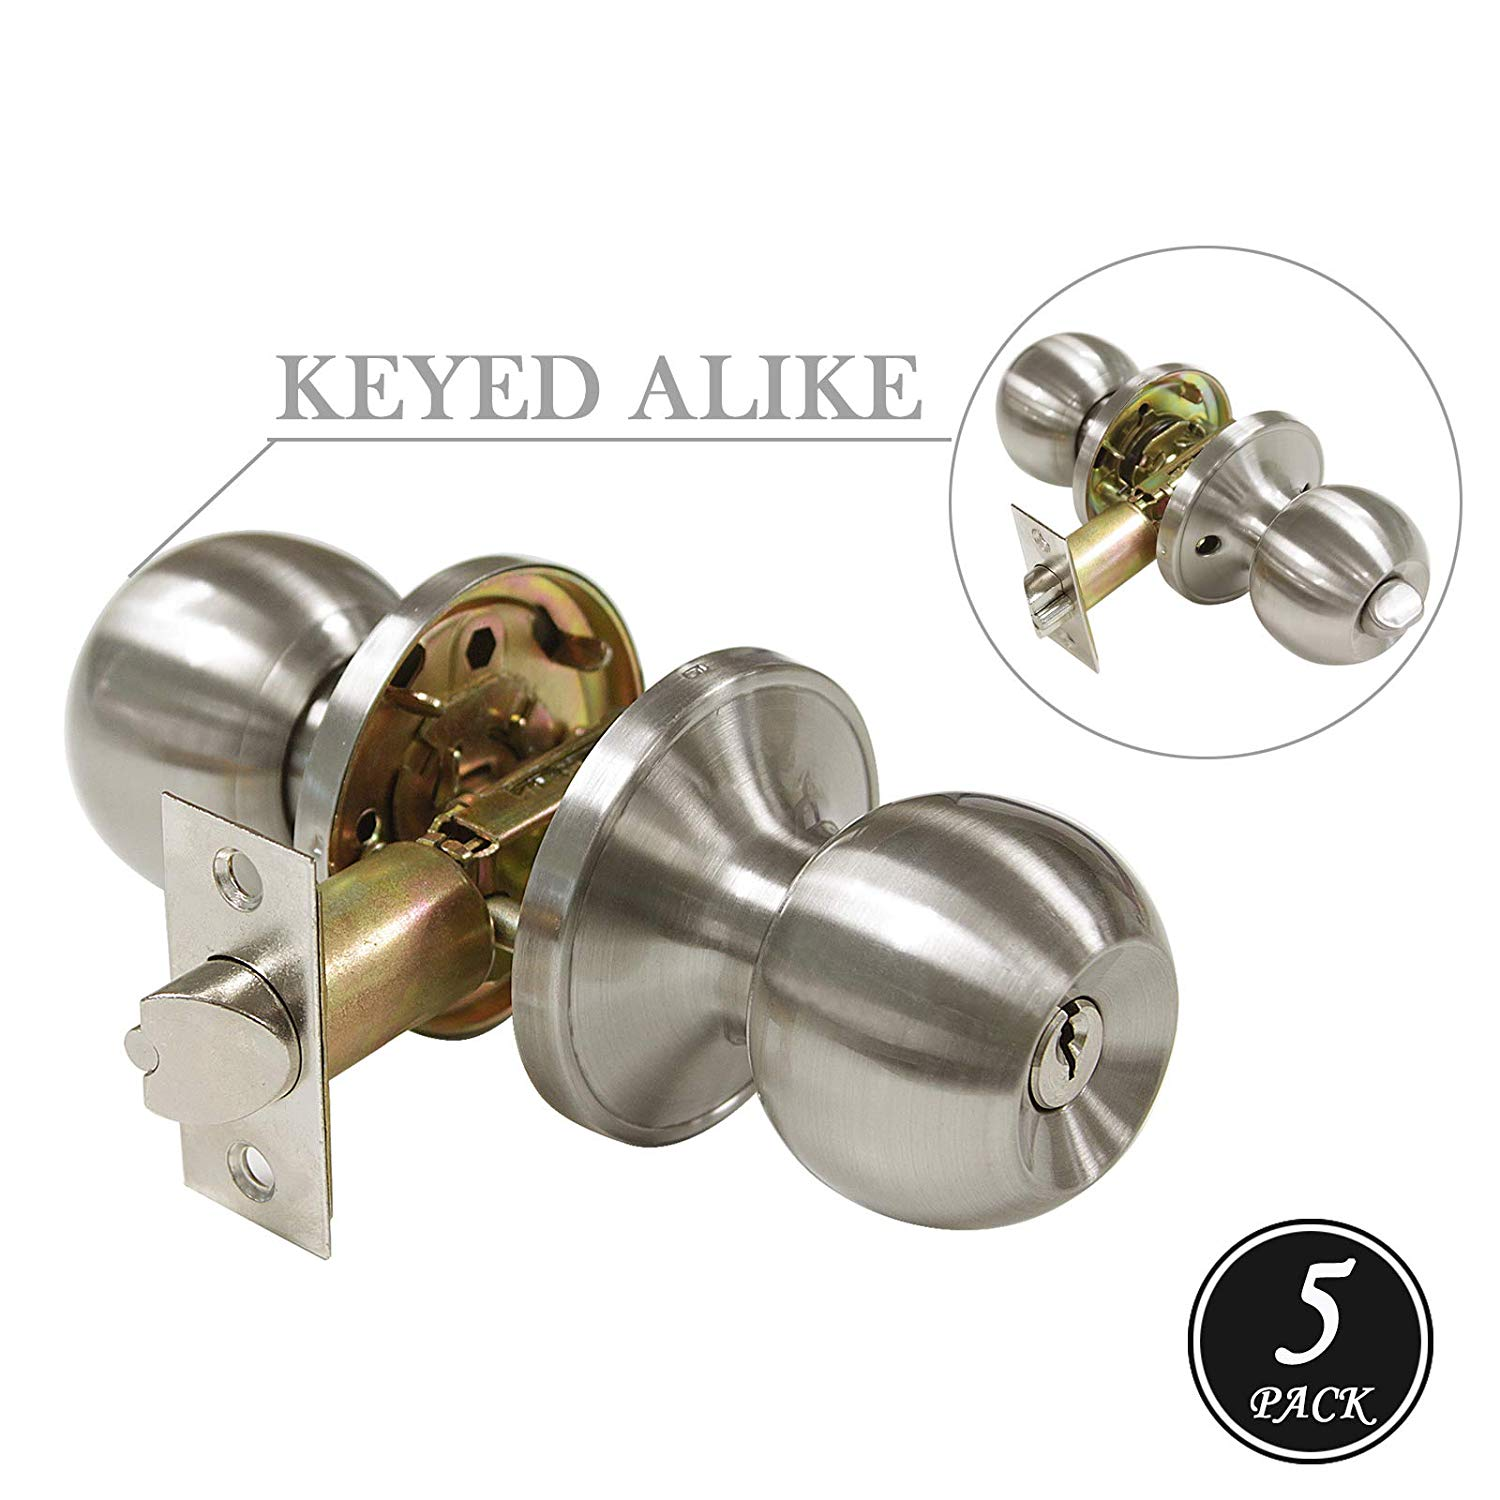 Knobonly 607 Stainless Steel Ball Satin Nickel Finish Door Knobs (5 Pack, Keyed Alike Entry Door Knobs)